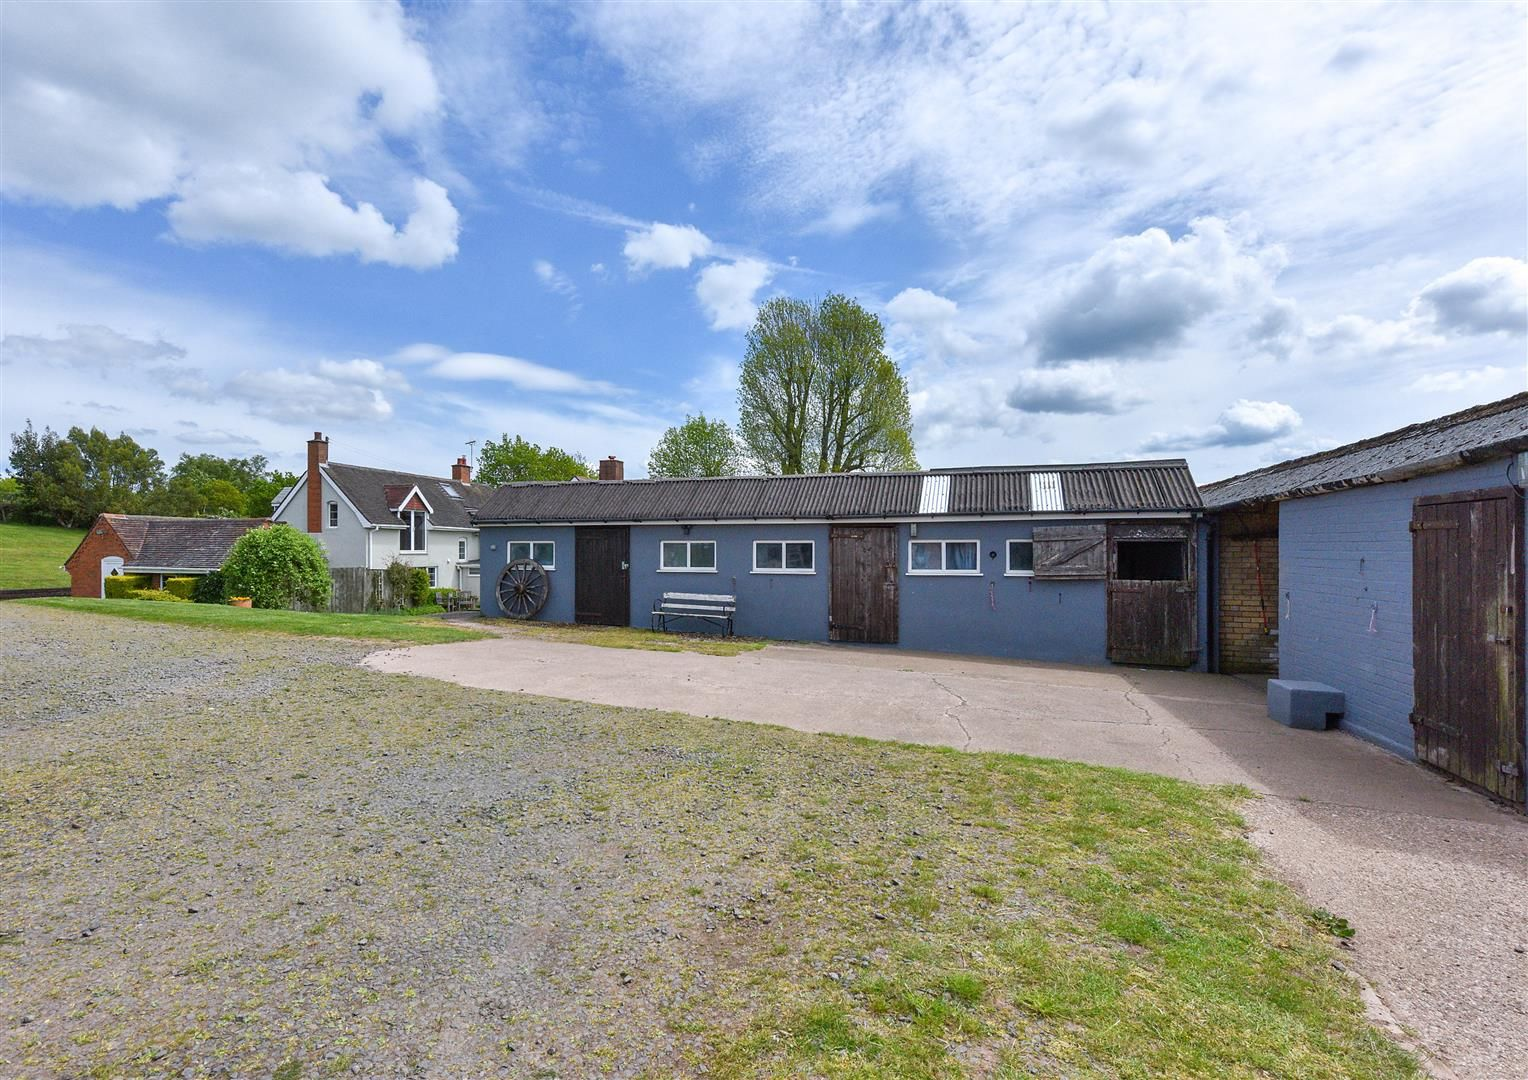 5 bed detached for sale in Clent 34